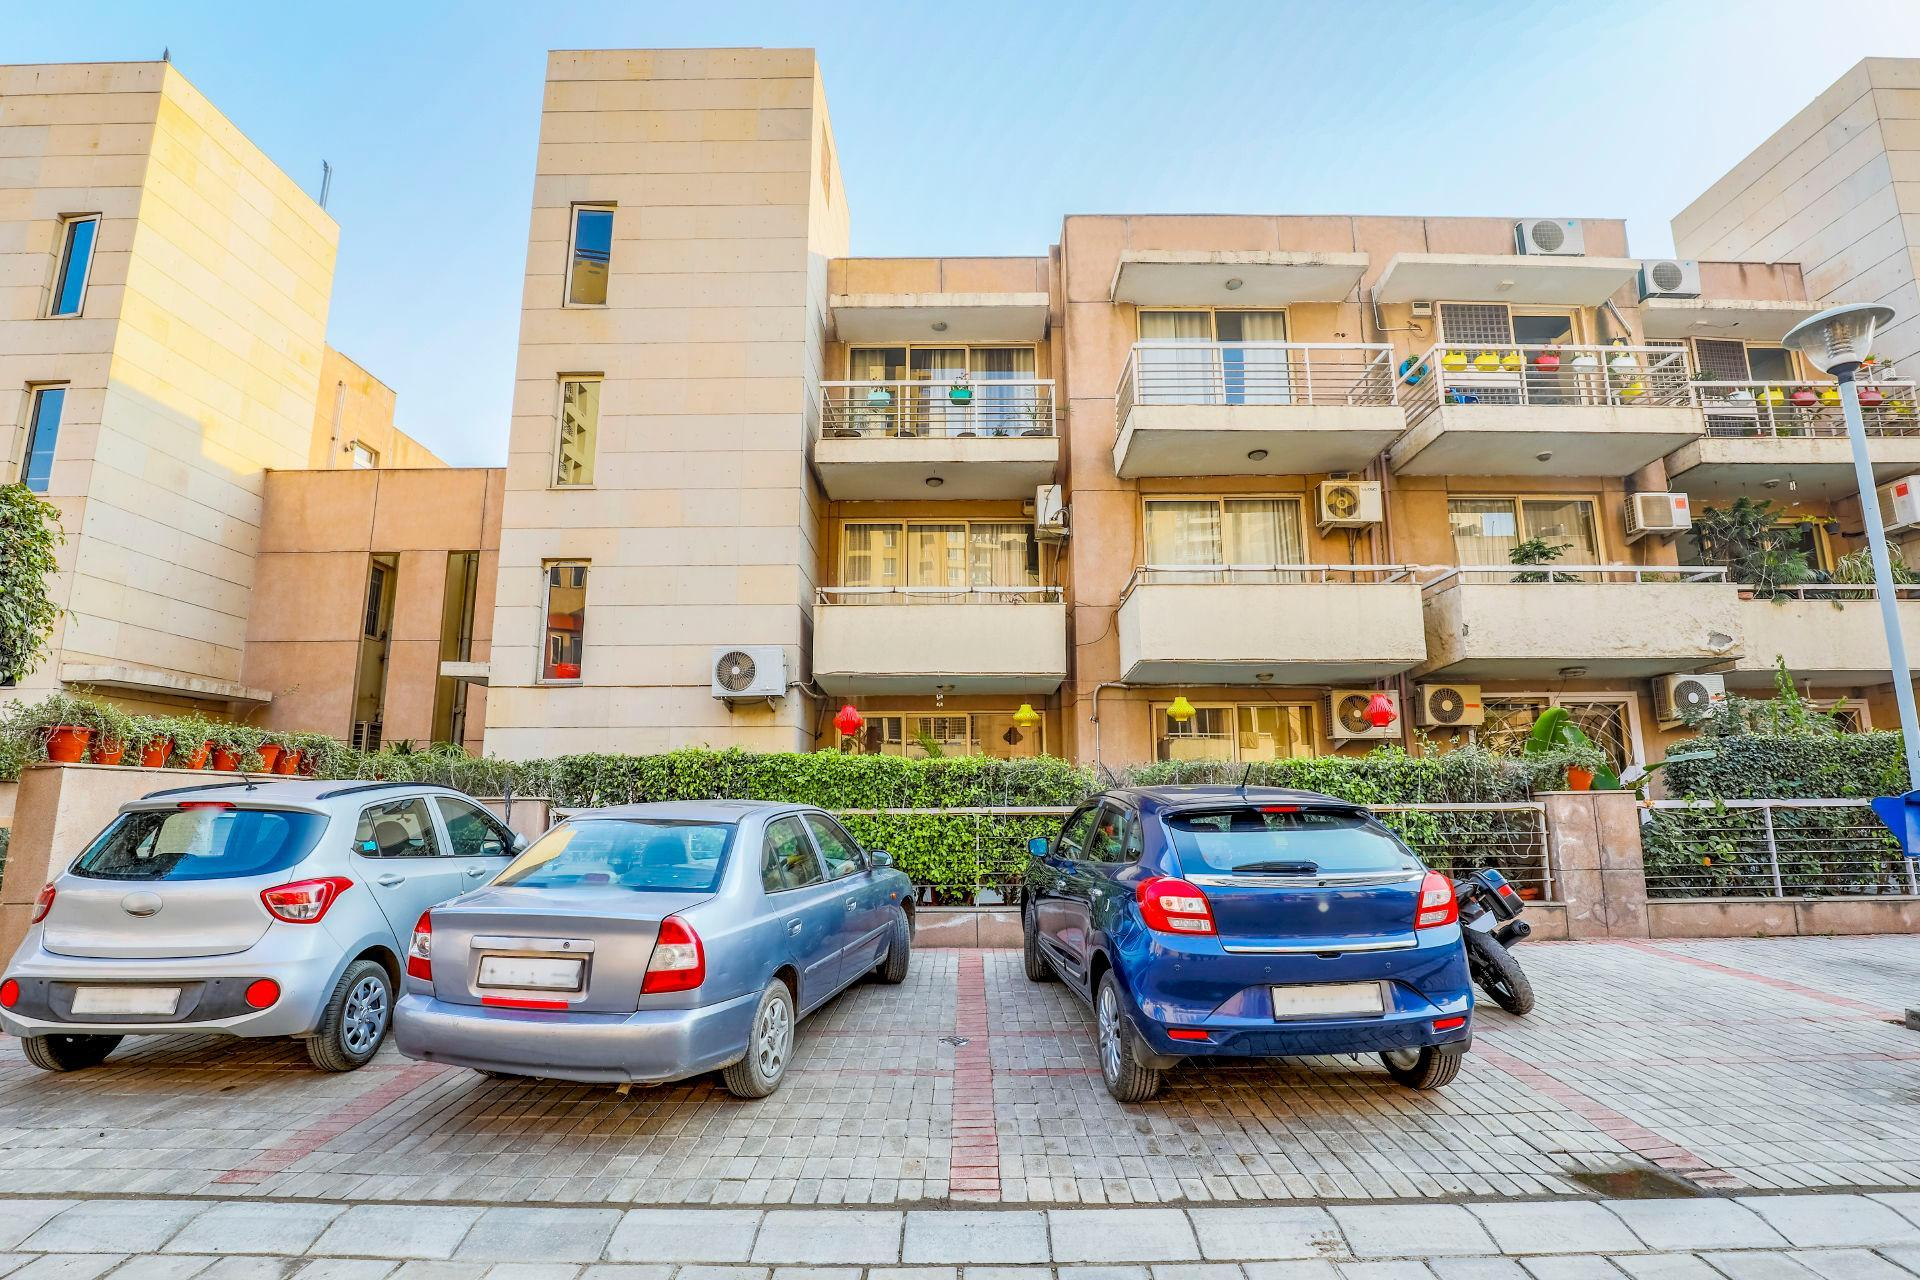 4 Bedroom Apartment In Nirvana Country 71697